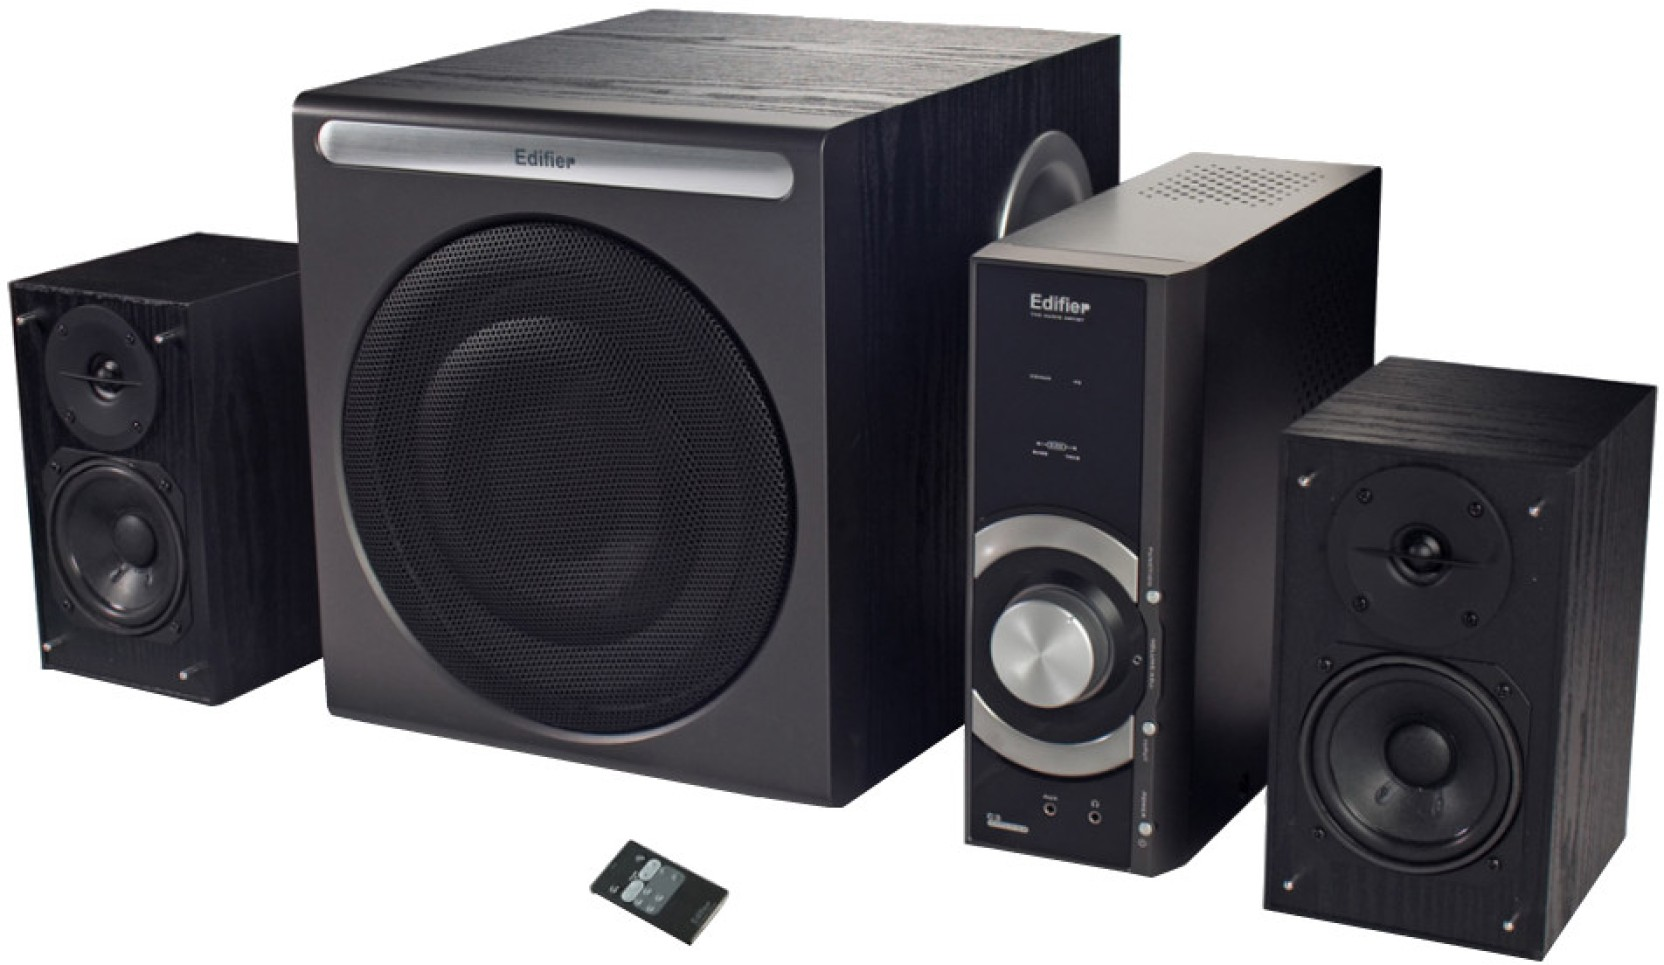 Buy Edifier C3 21 Multimedia Speakers Online From